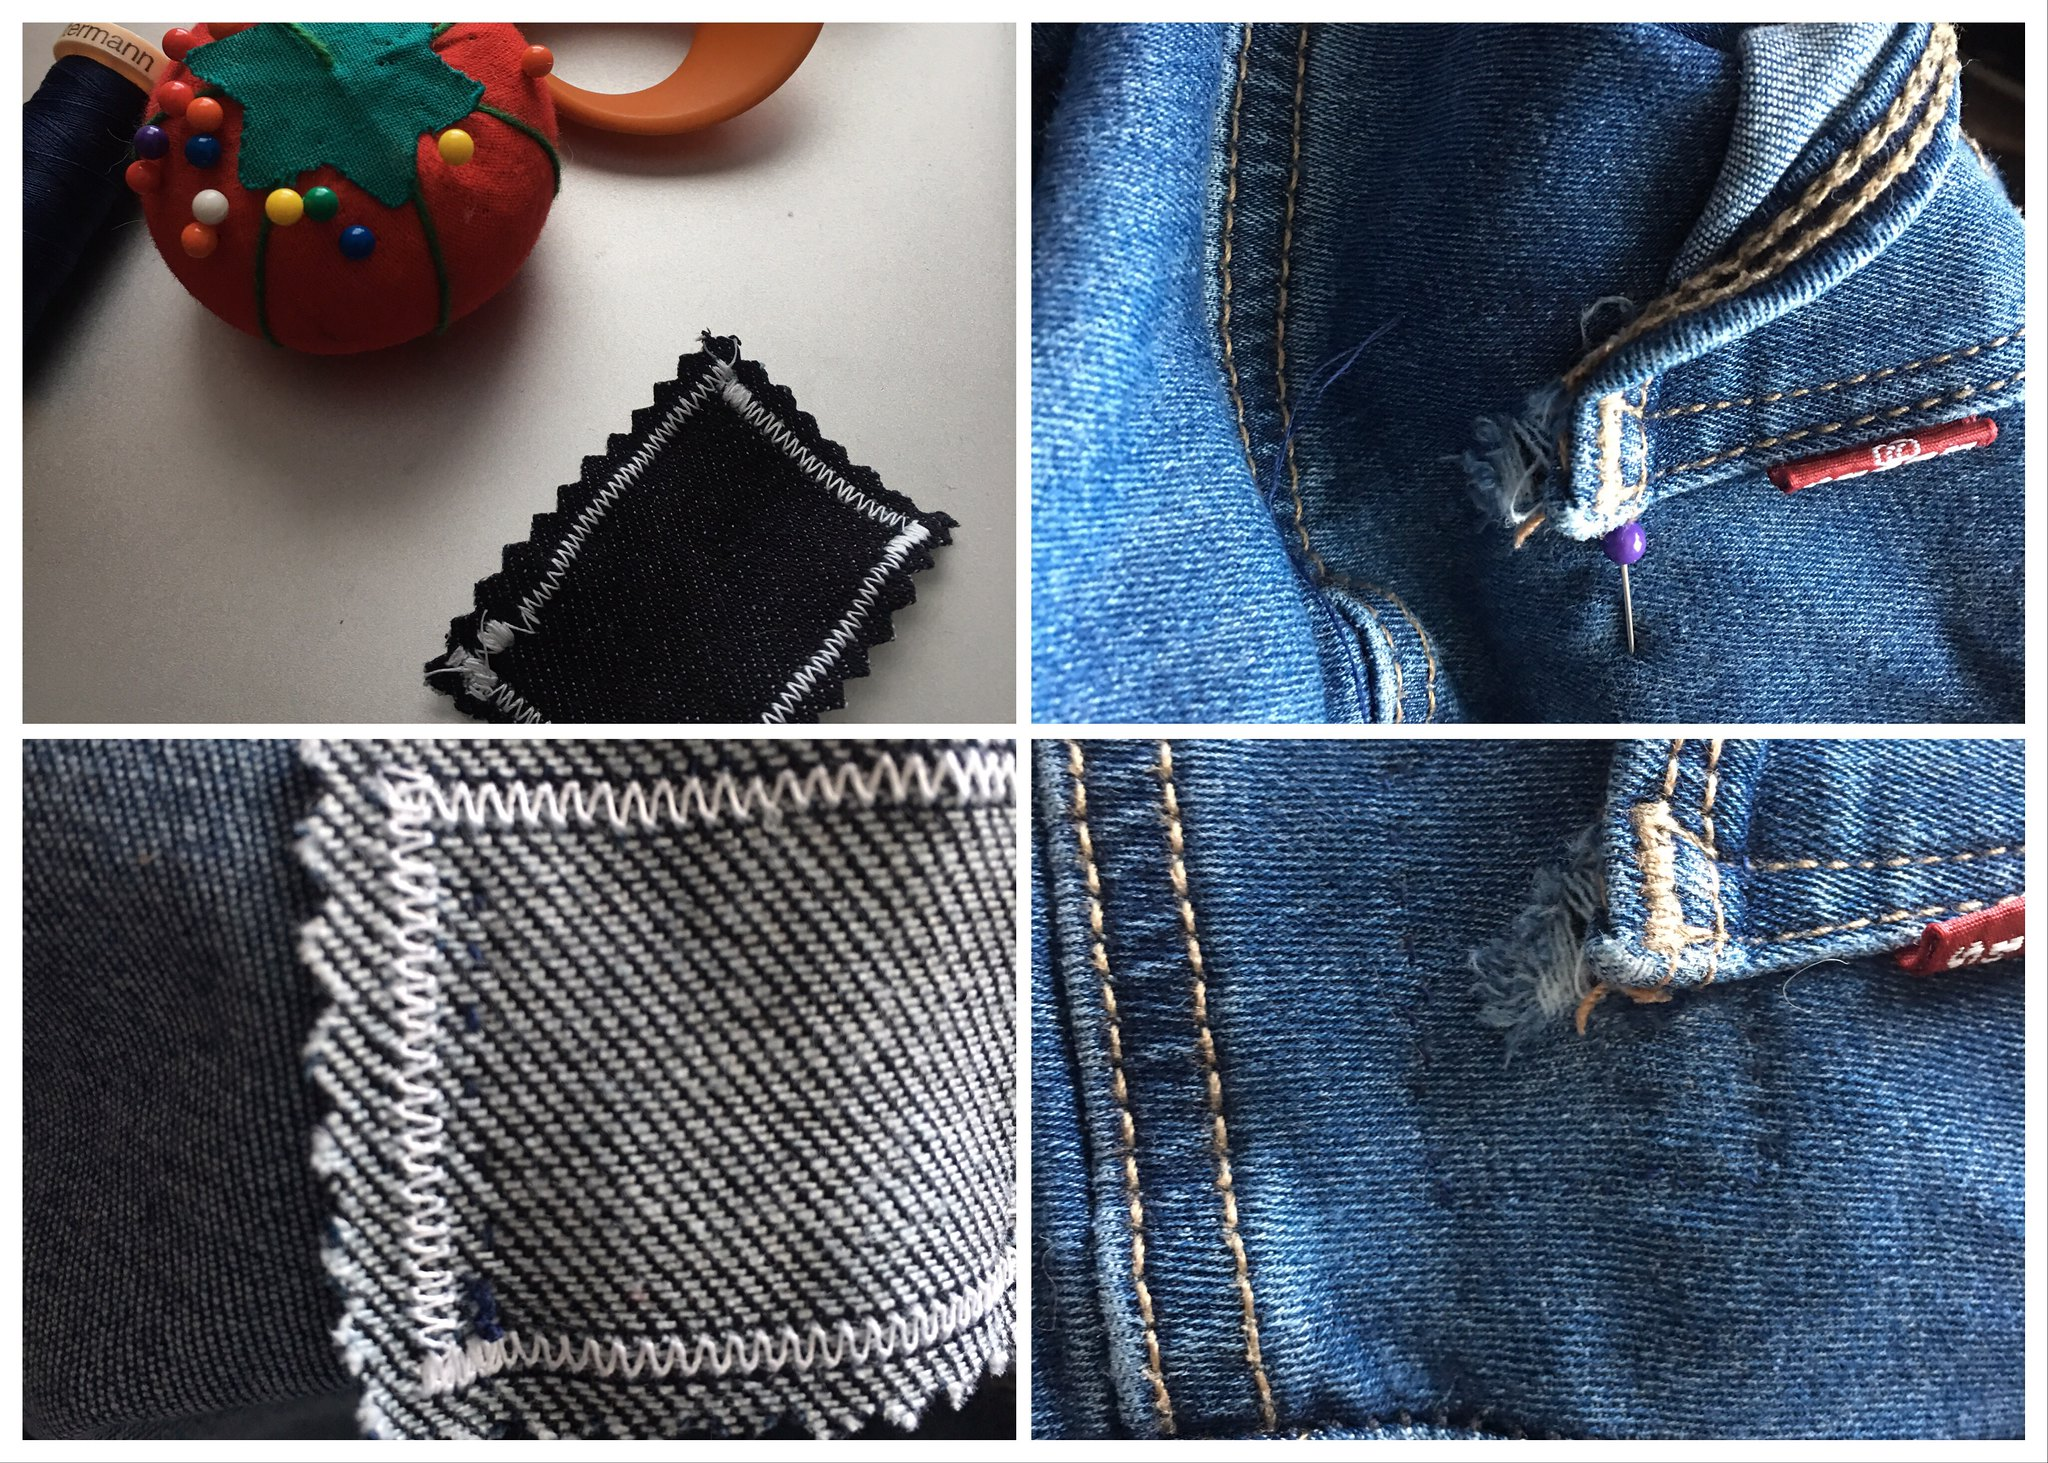 Steps of visible mending on jeans